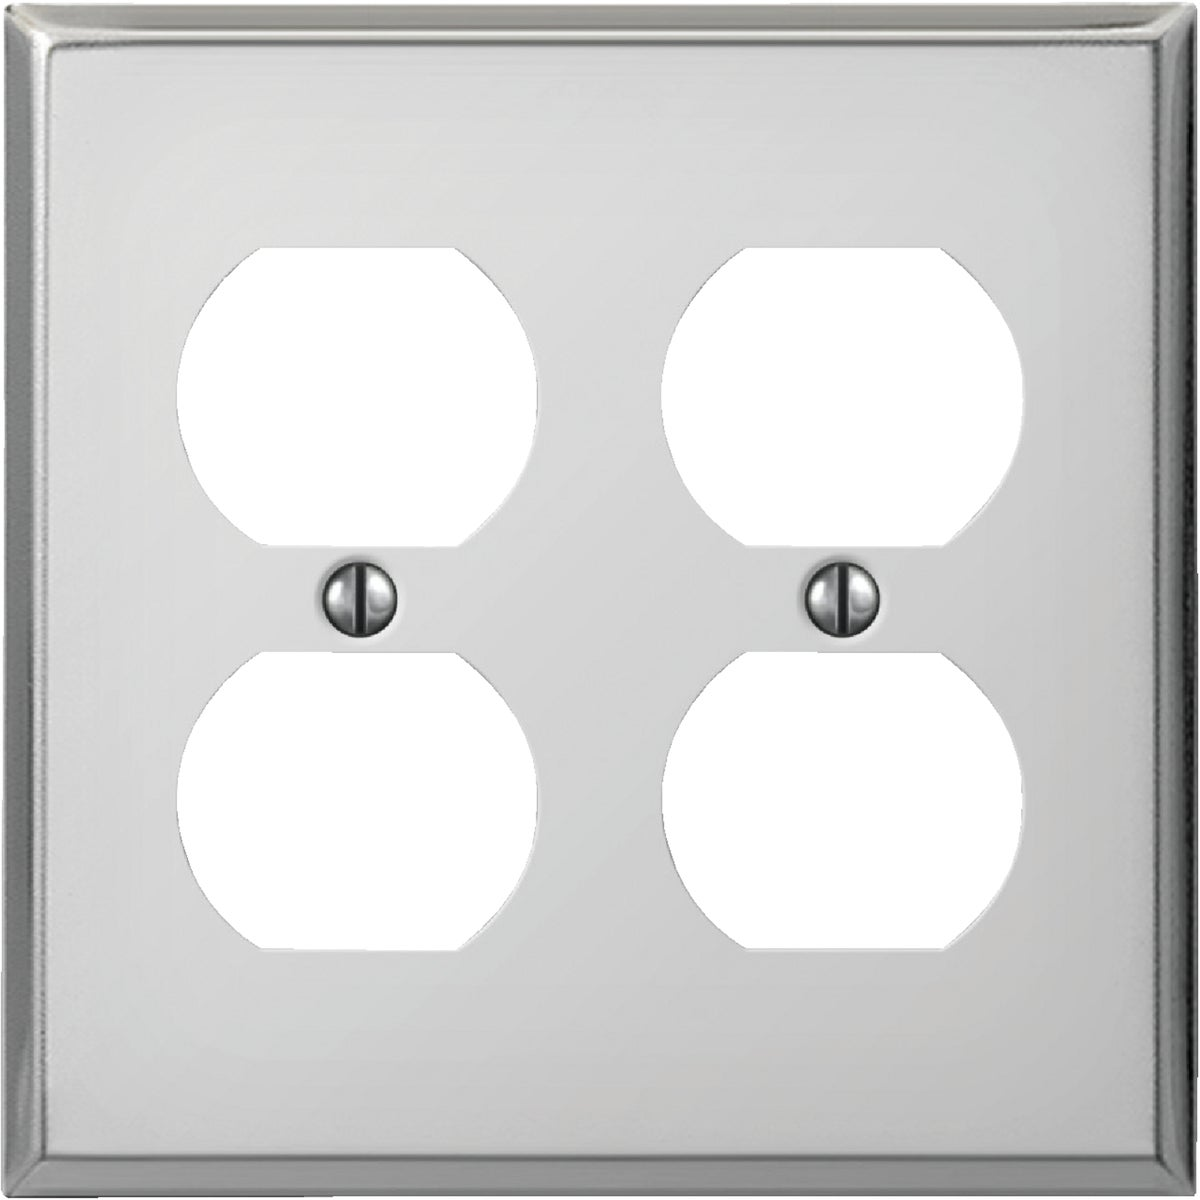 CHR DBL OUTLT WALL PLATE - 8CS118 by Jackson Deerfield Mf